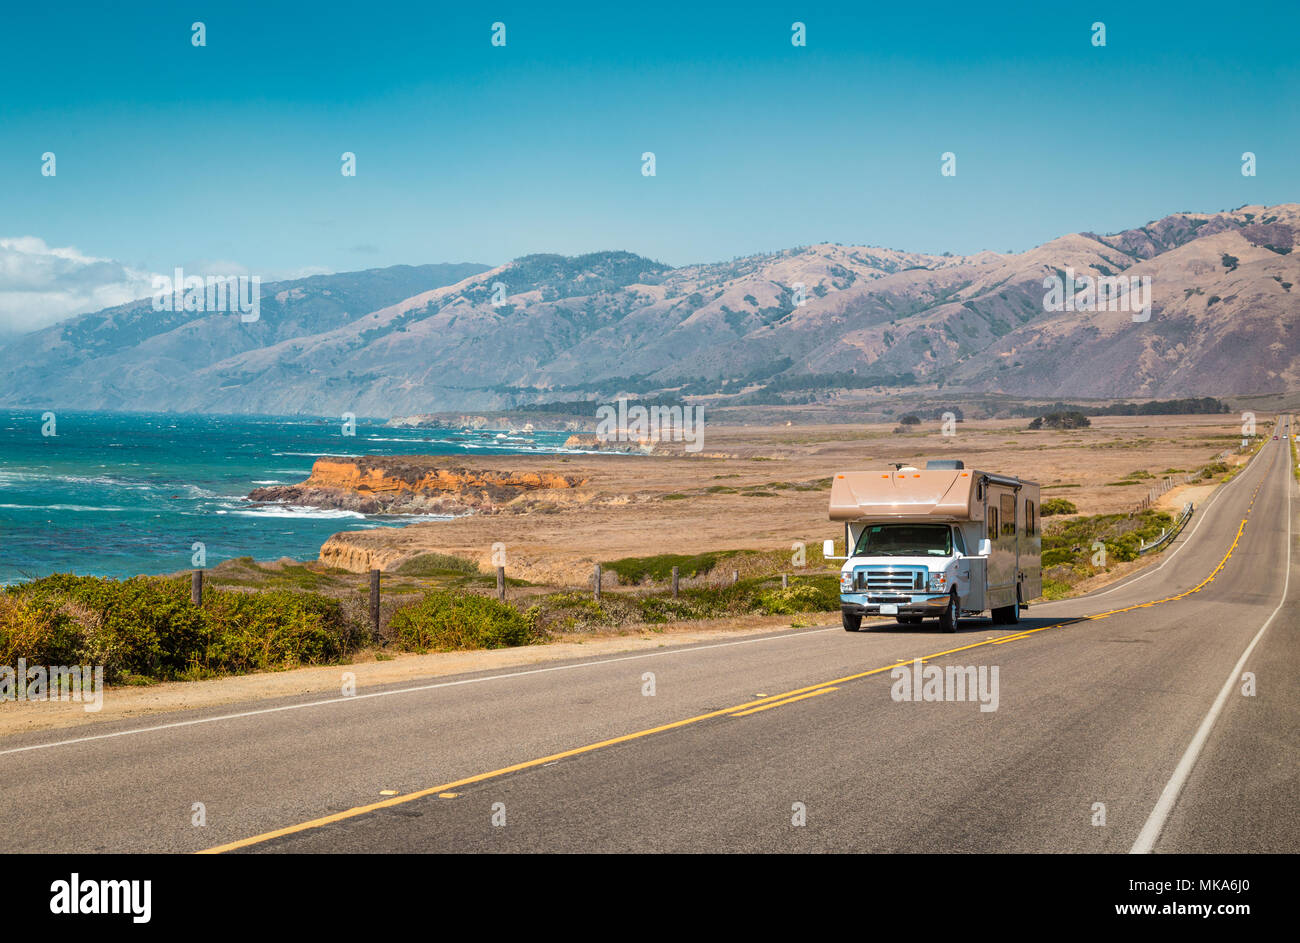 Panorama view of recreational vehicle driving on famous Highway 1 along the beautiful Central Coast of California, Big Sur, USA - Stock Image